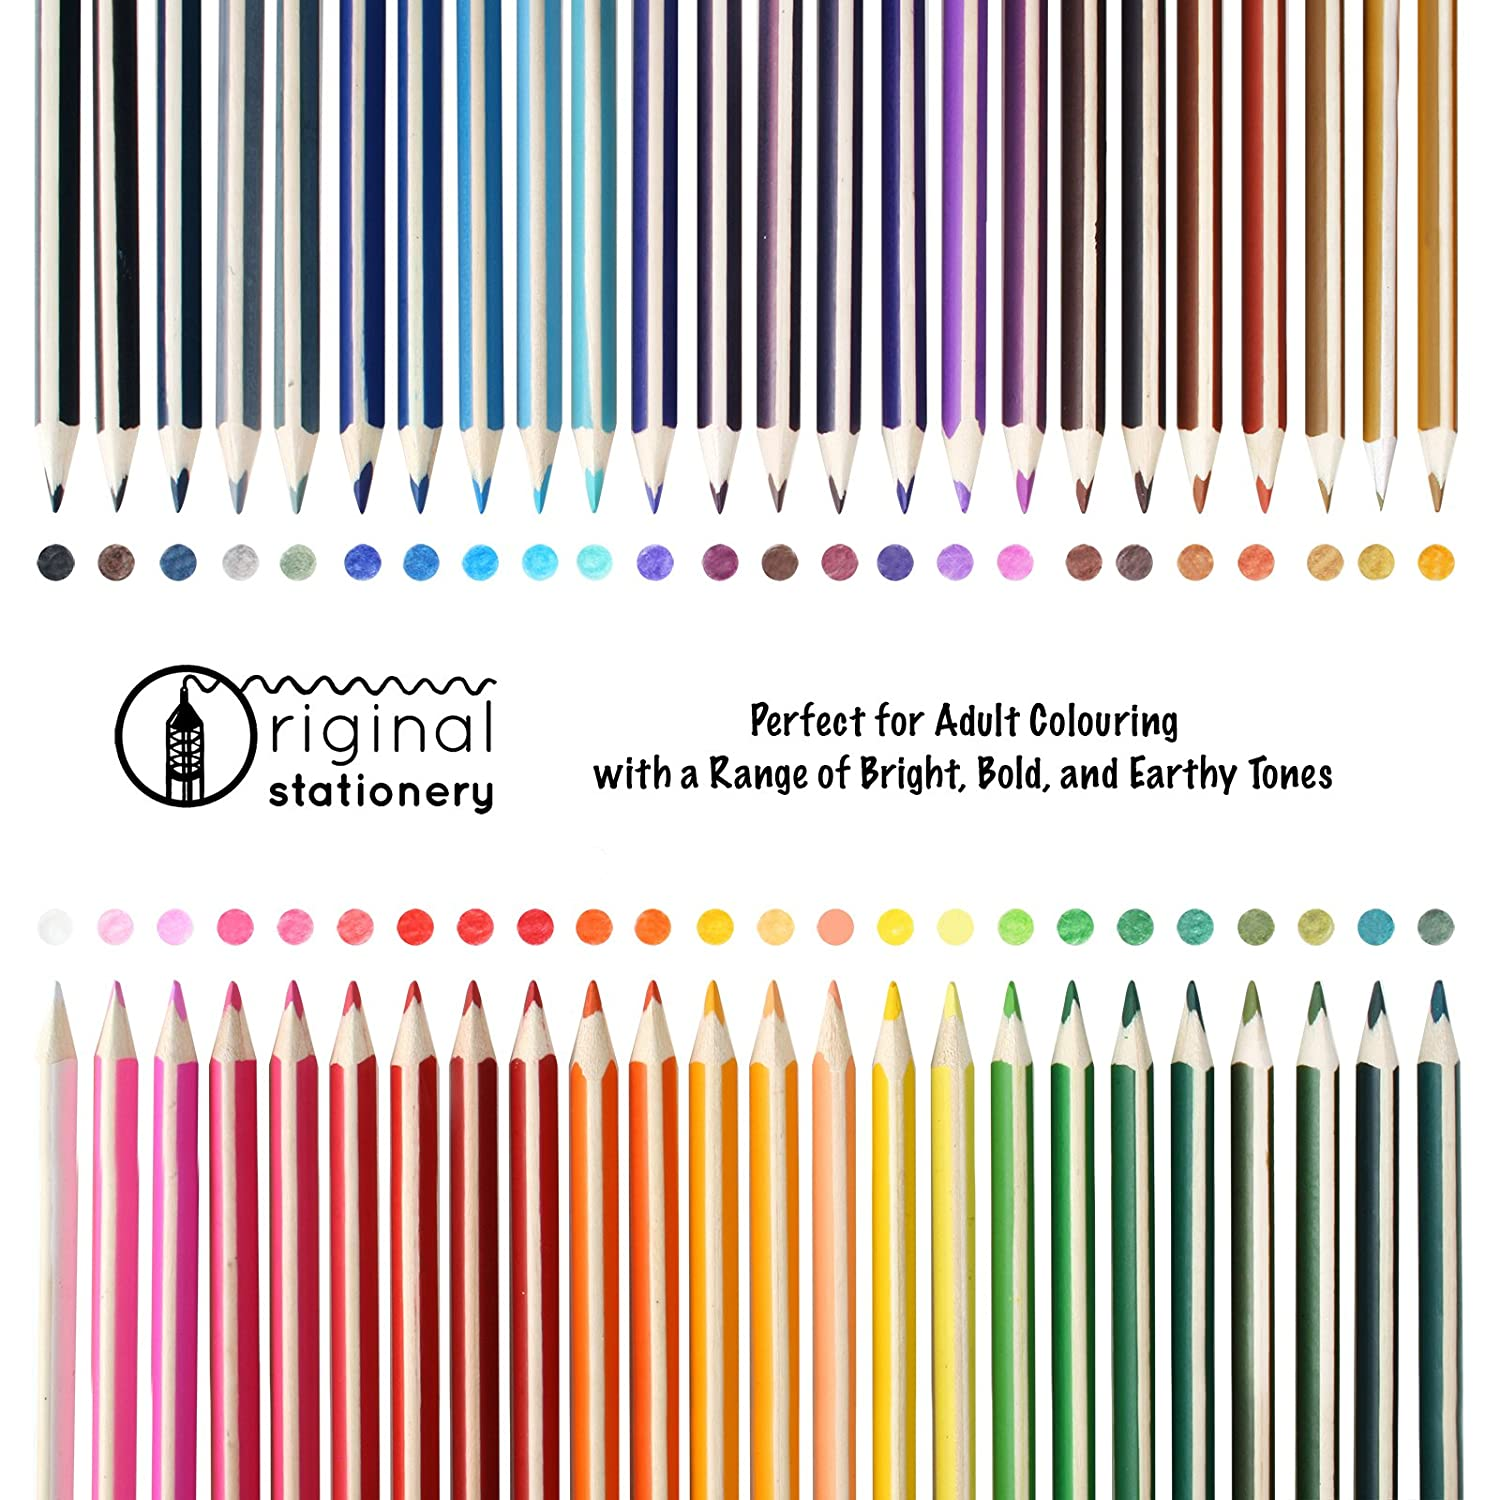 Original Stationery Deluxe Anti Break Colouring Pencil Set for Adult